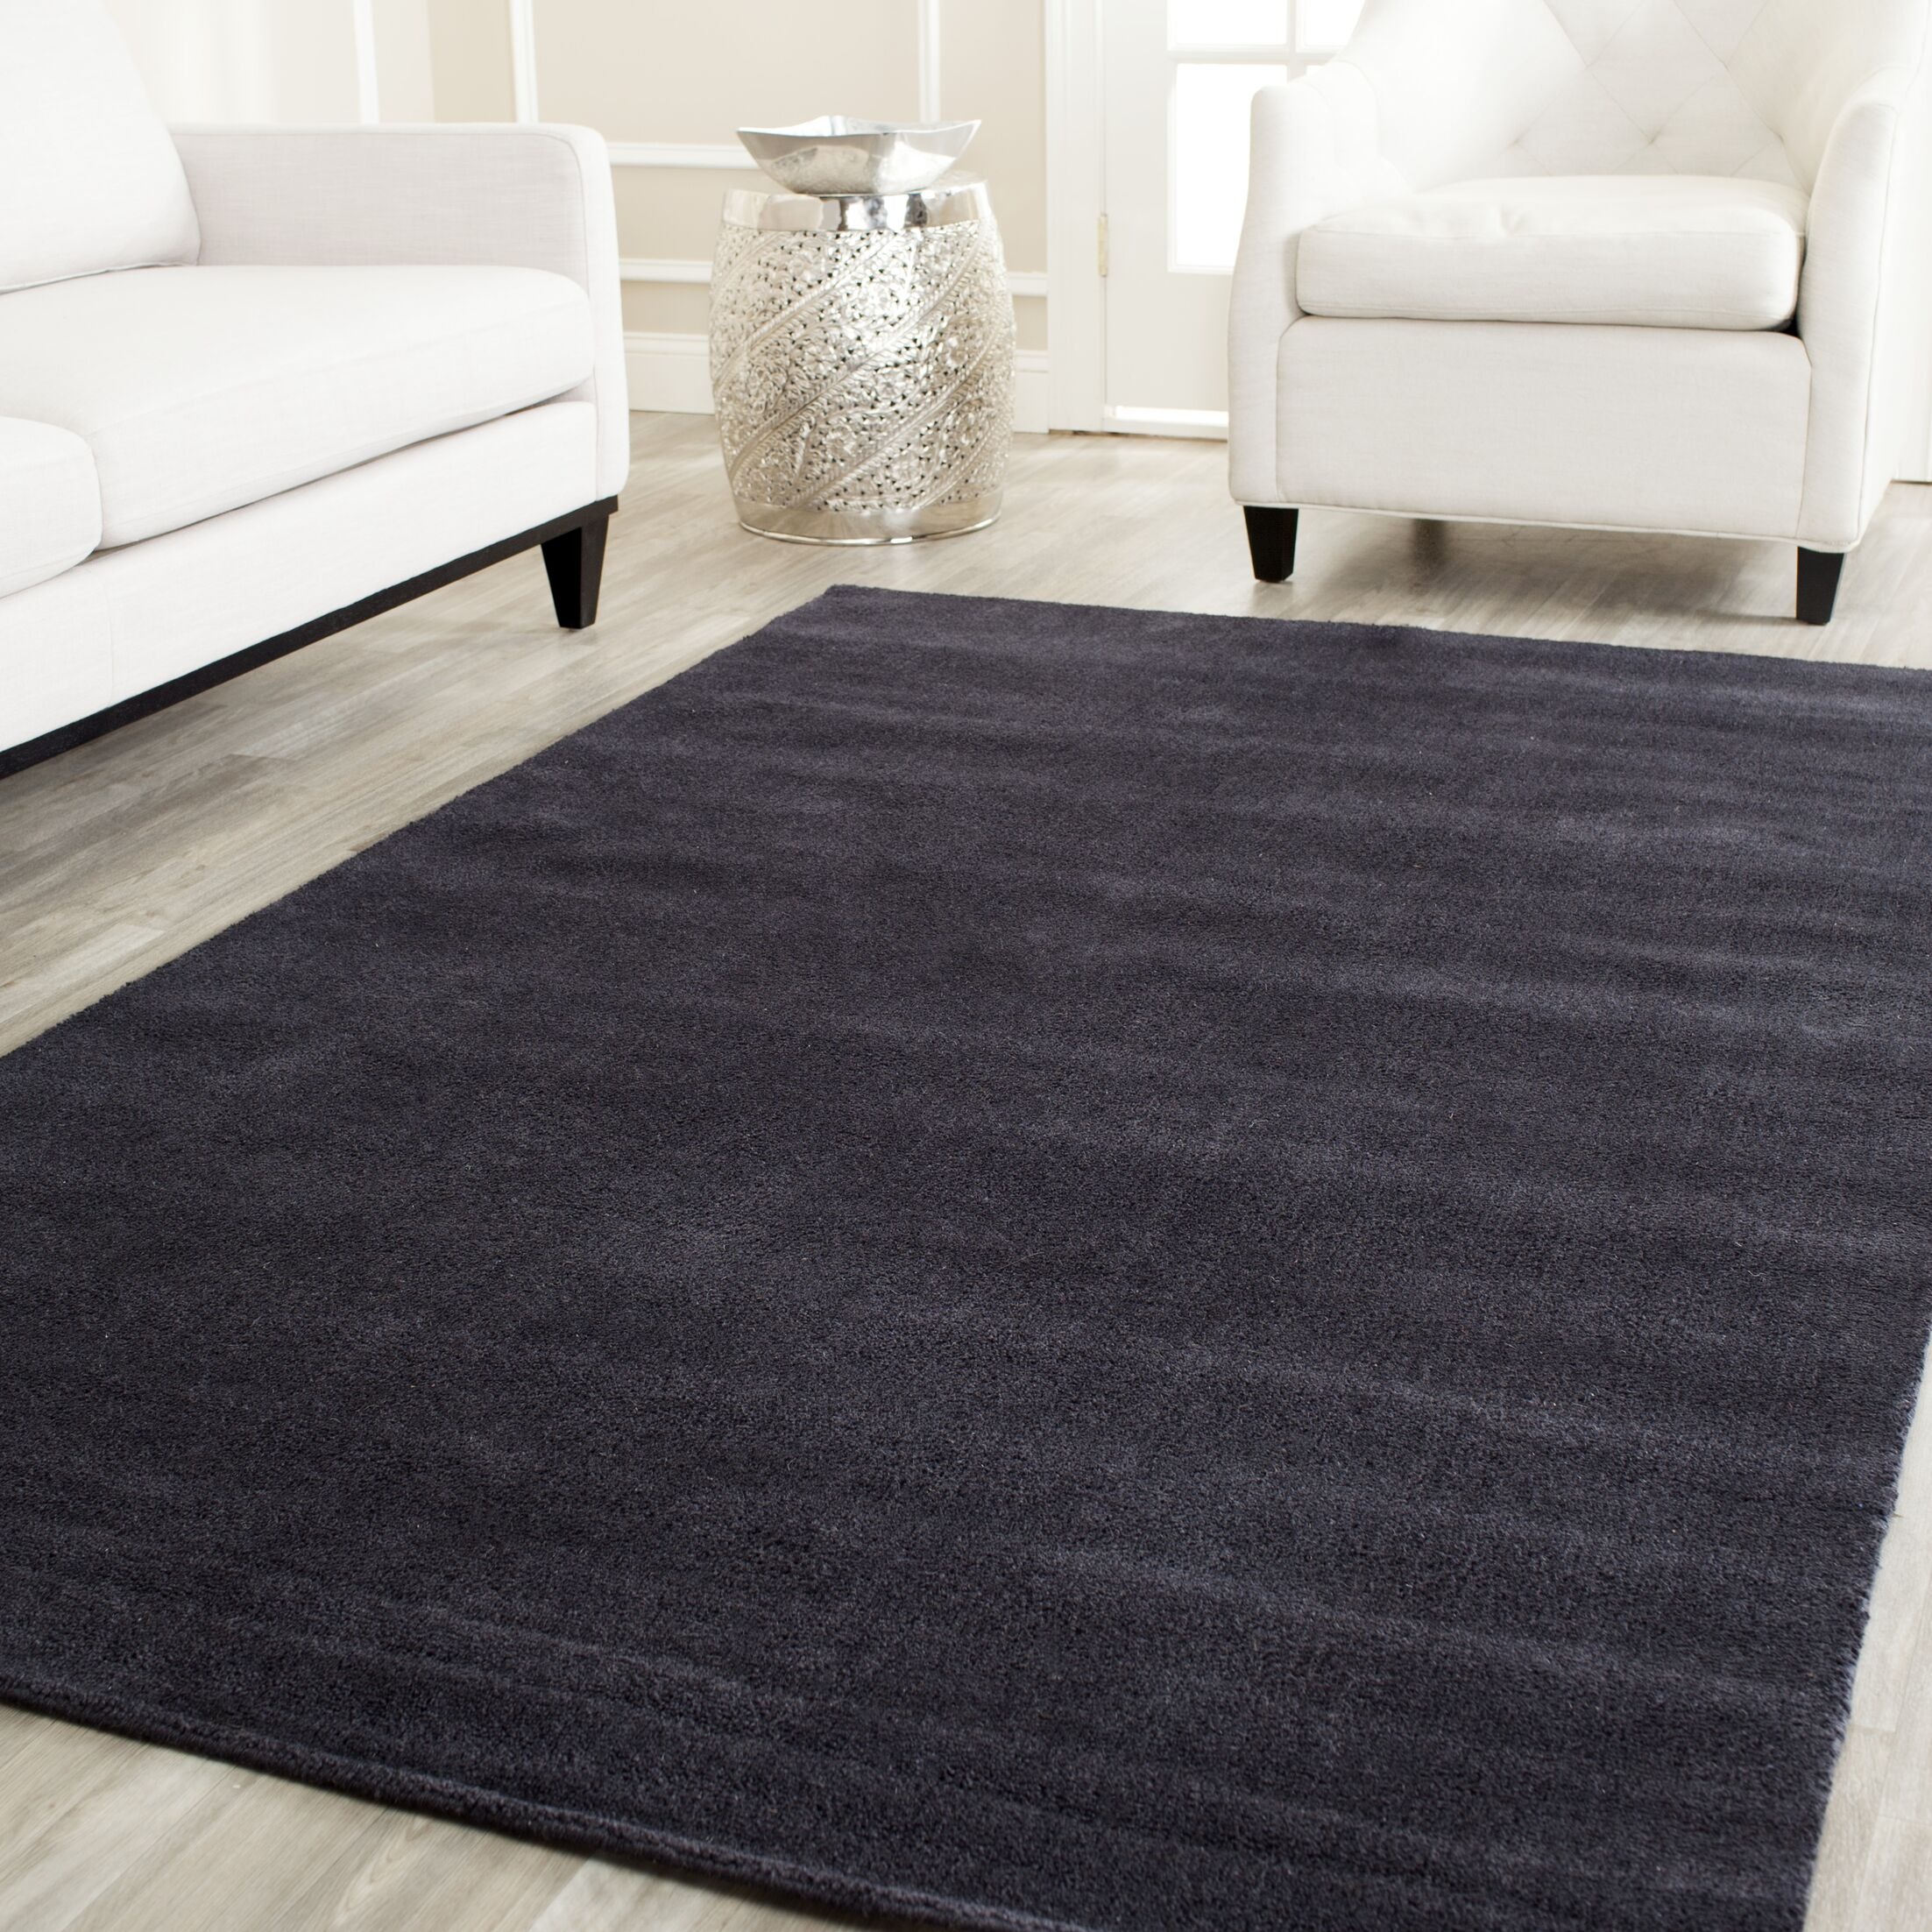 Bargo Black Area Rug Rug Size: Rectangle 6' x 9'